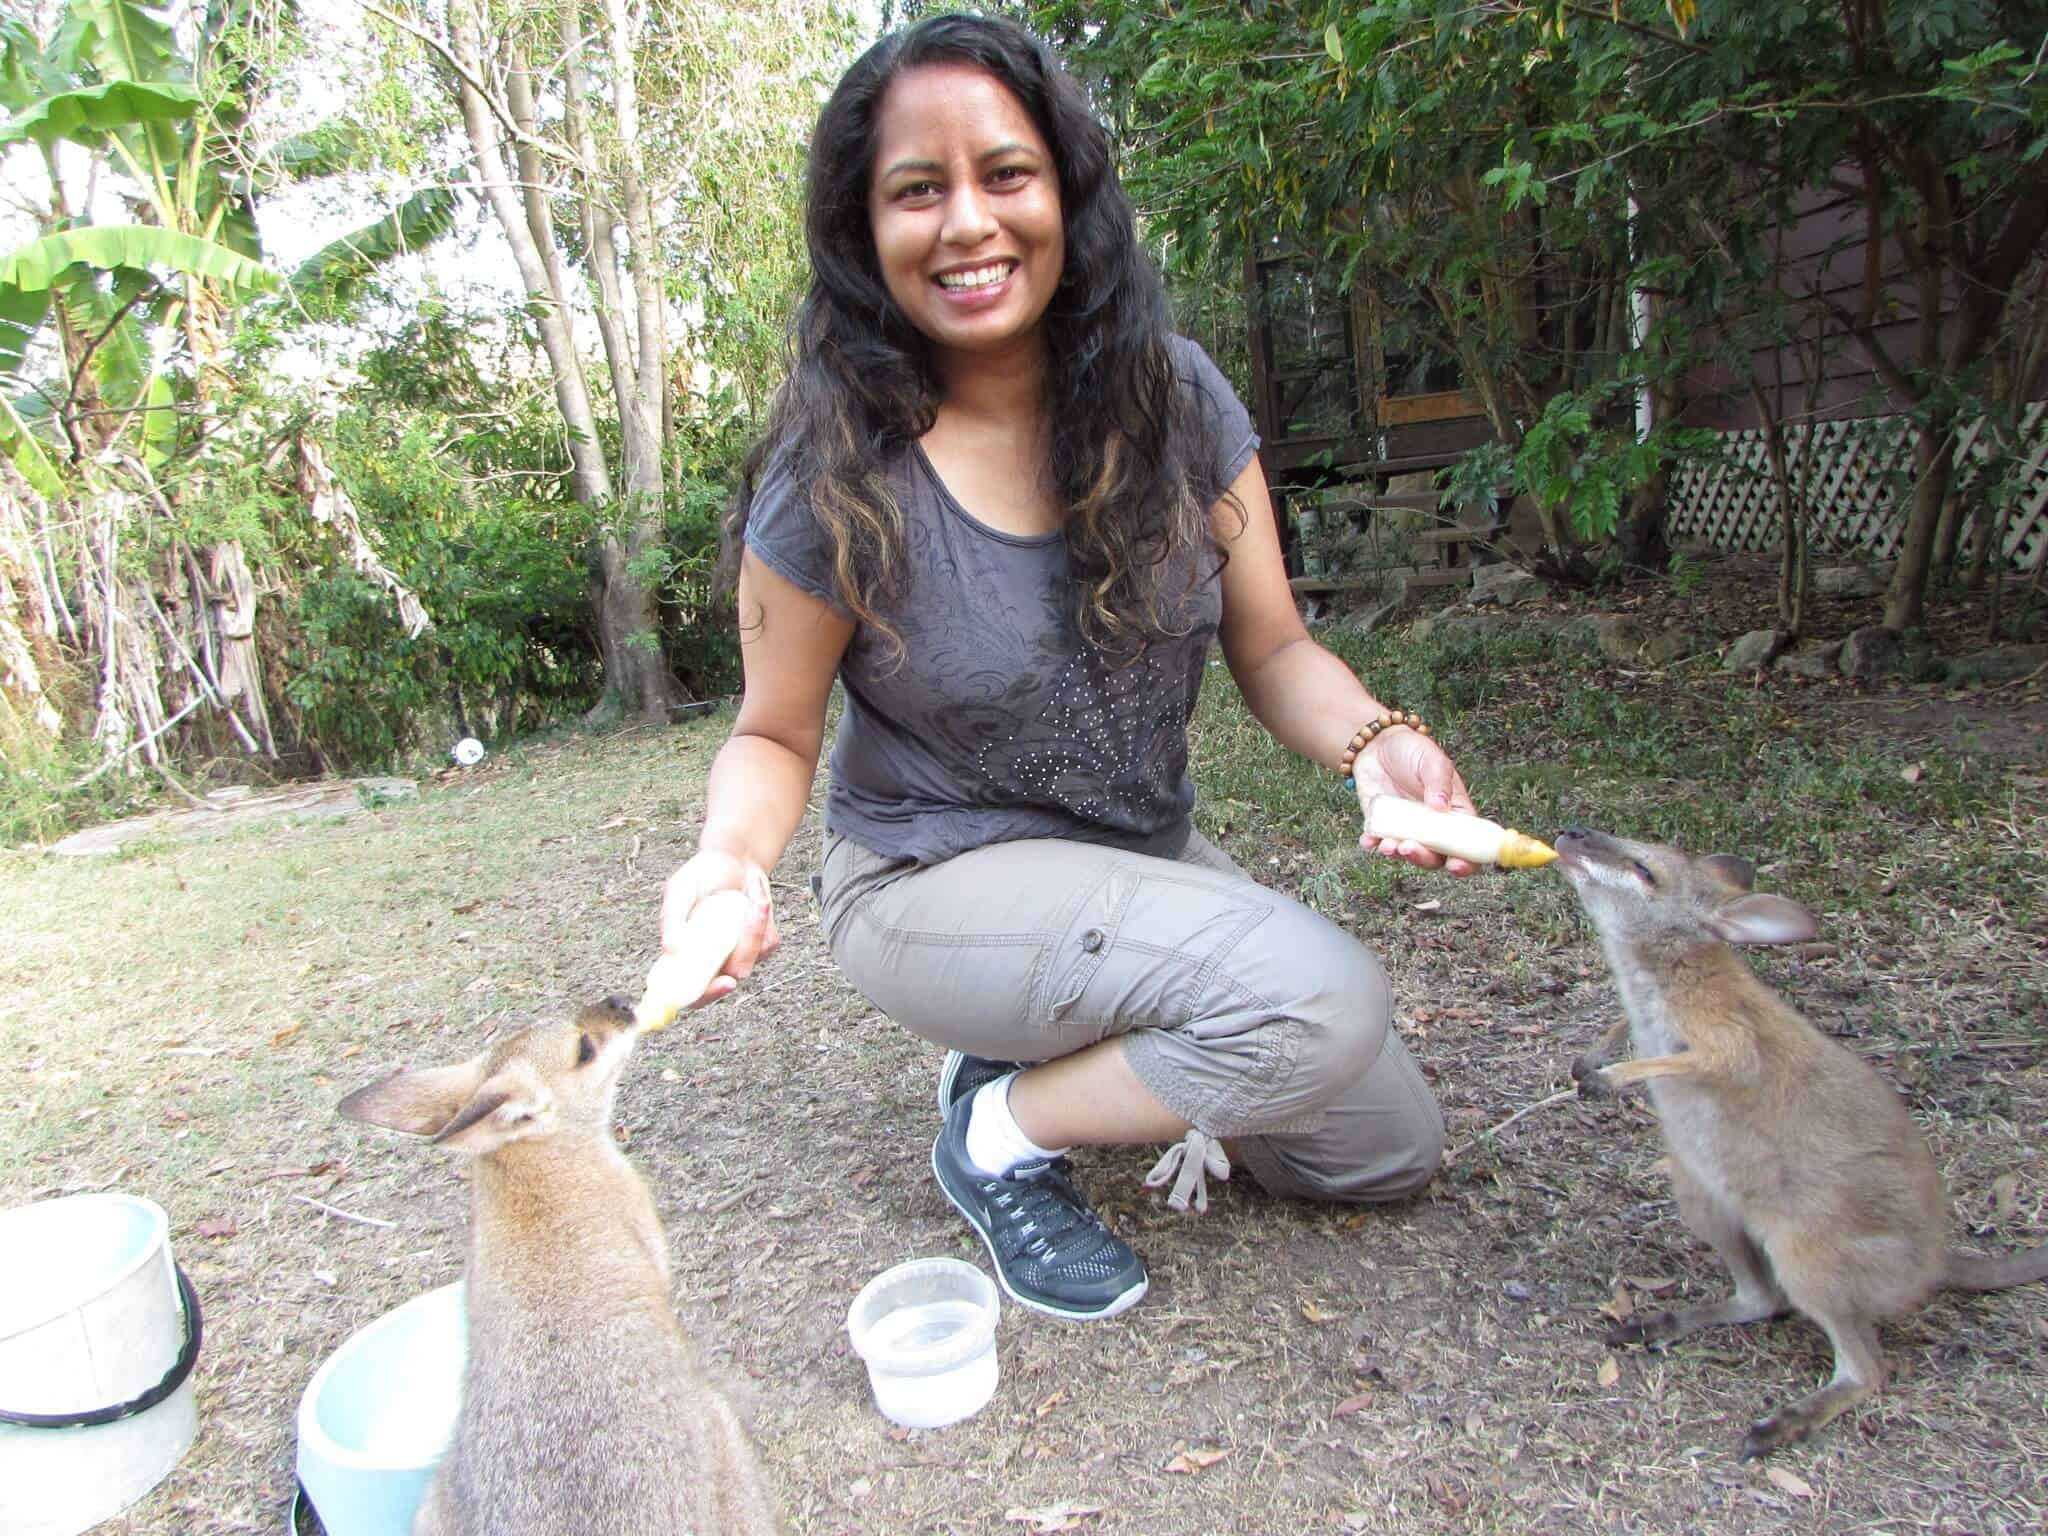 Volunteering at a Kangaroo Sanctuary - feeding baby wallabies